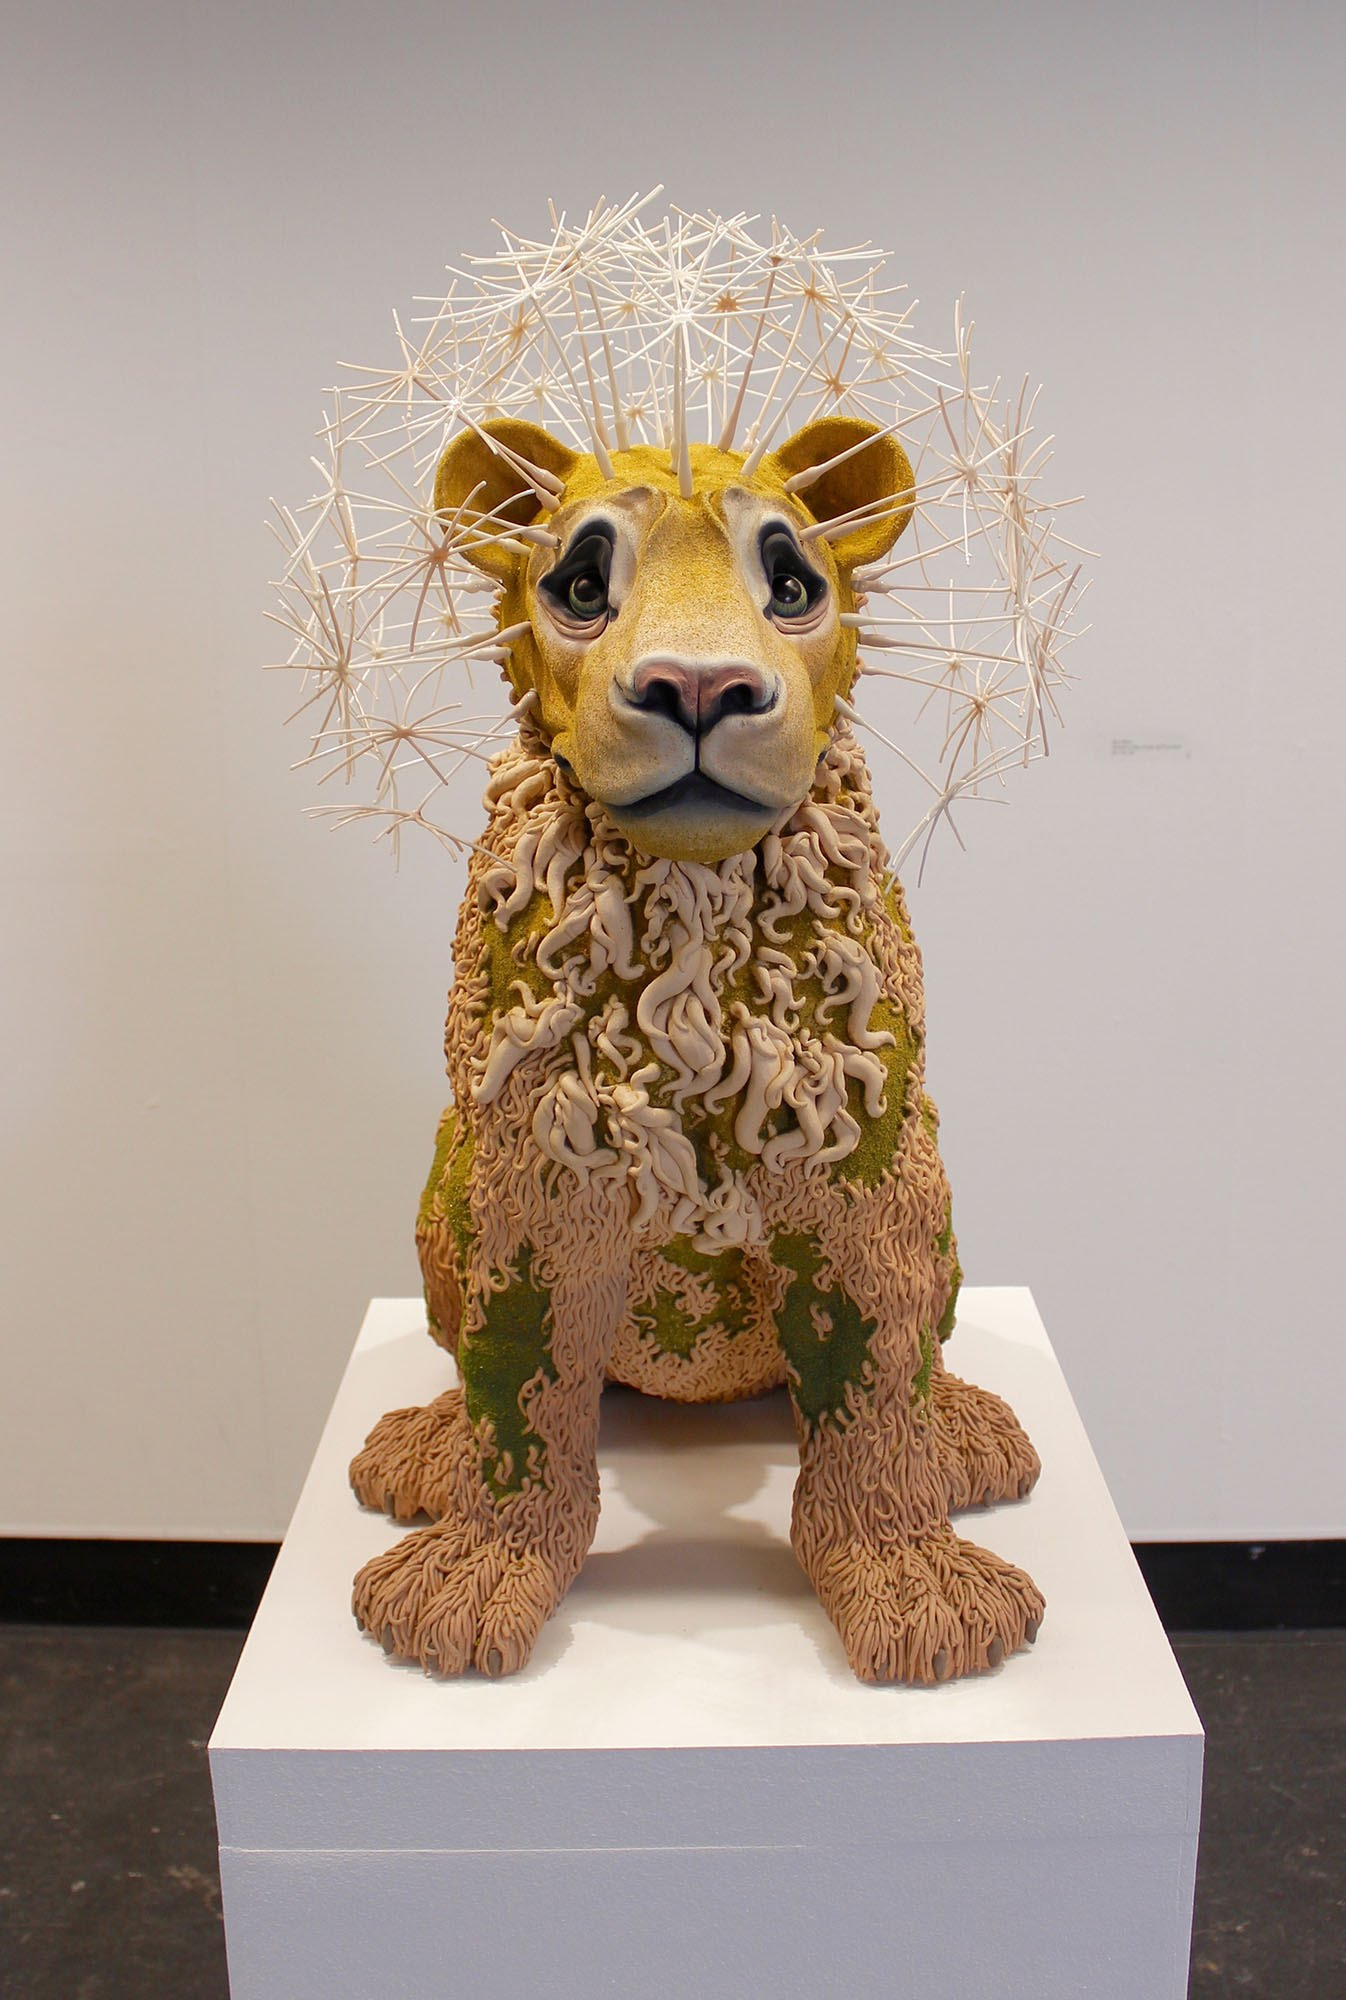 sculpture of a lion by Suzanne Head